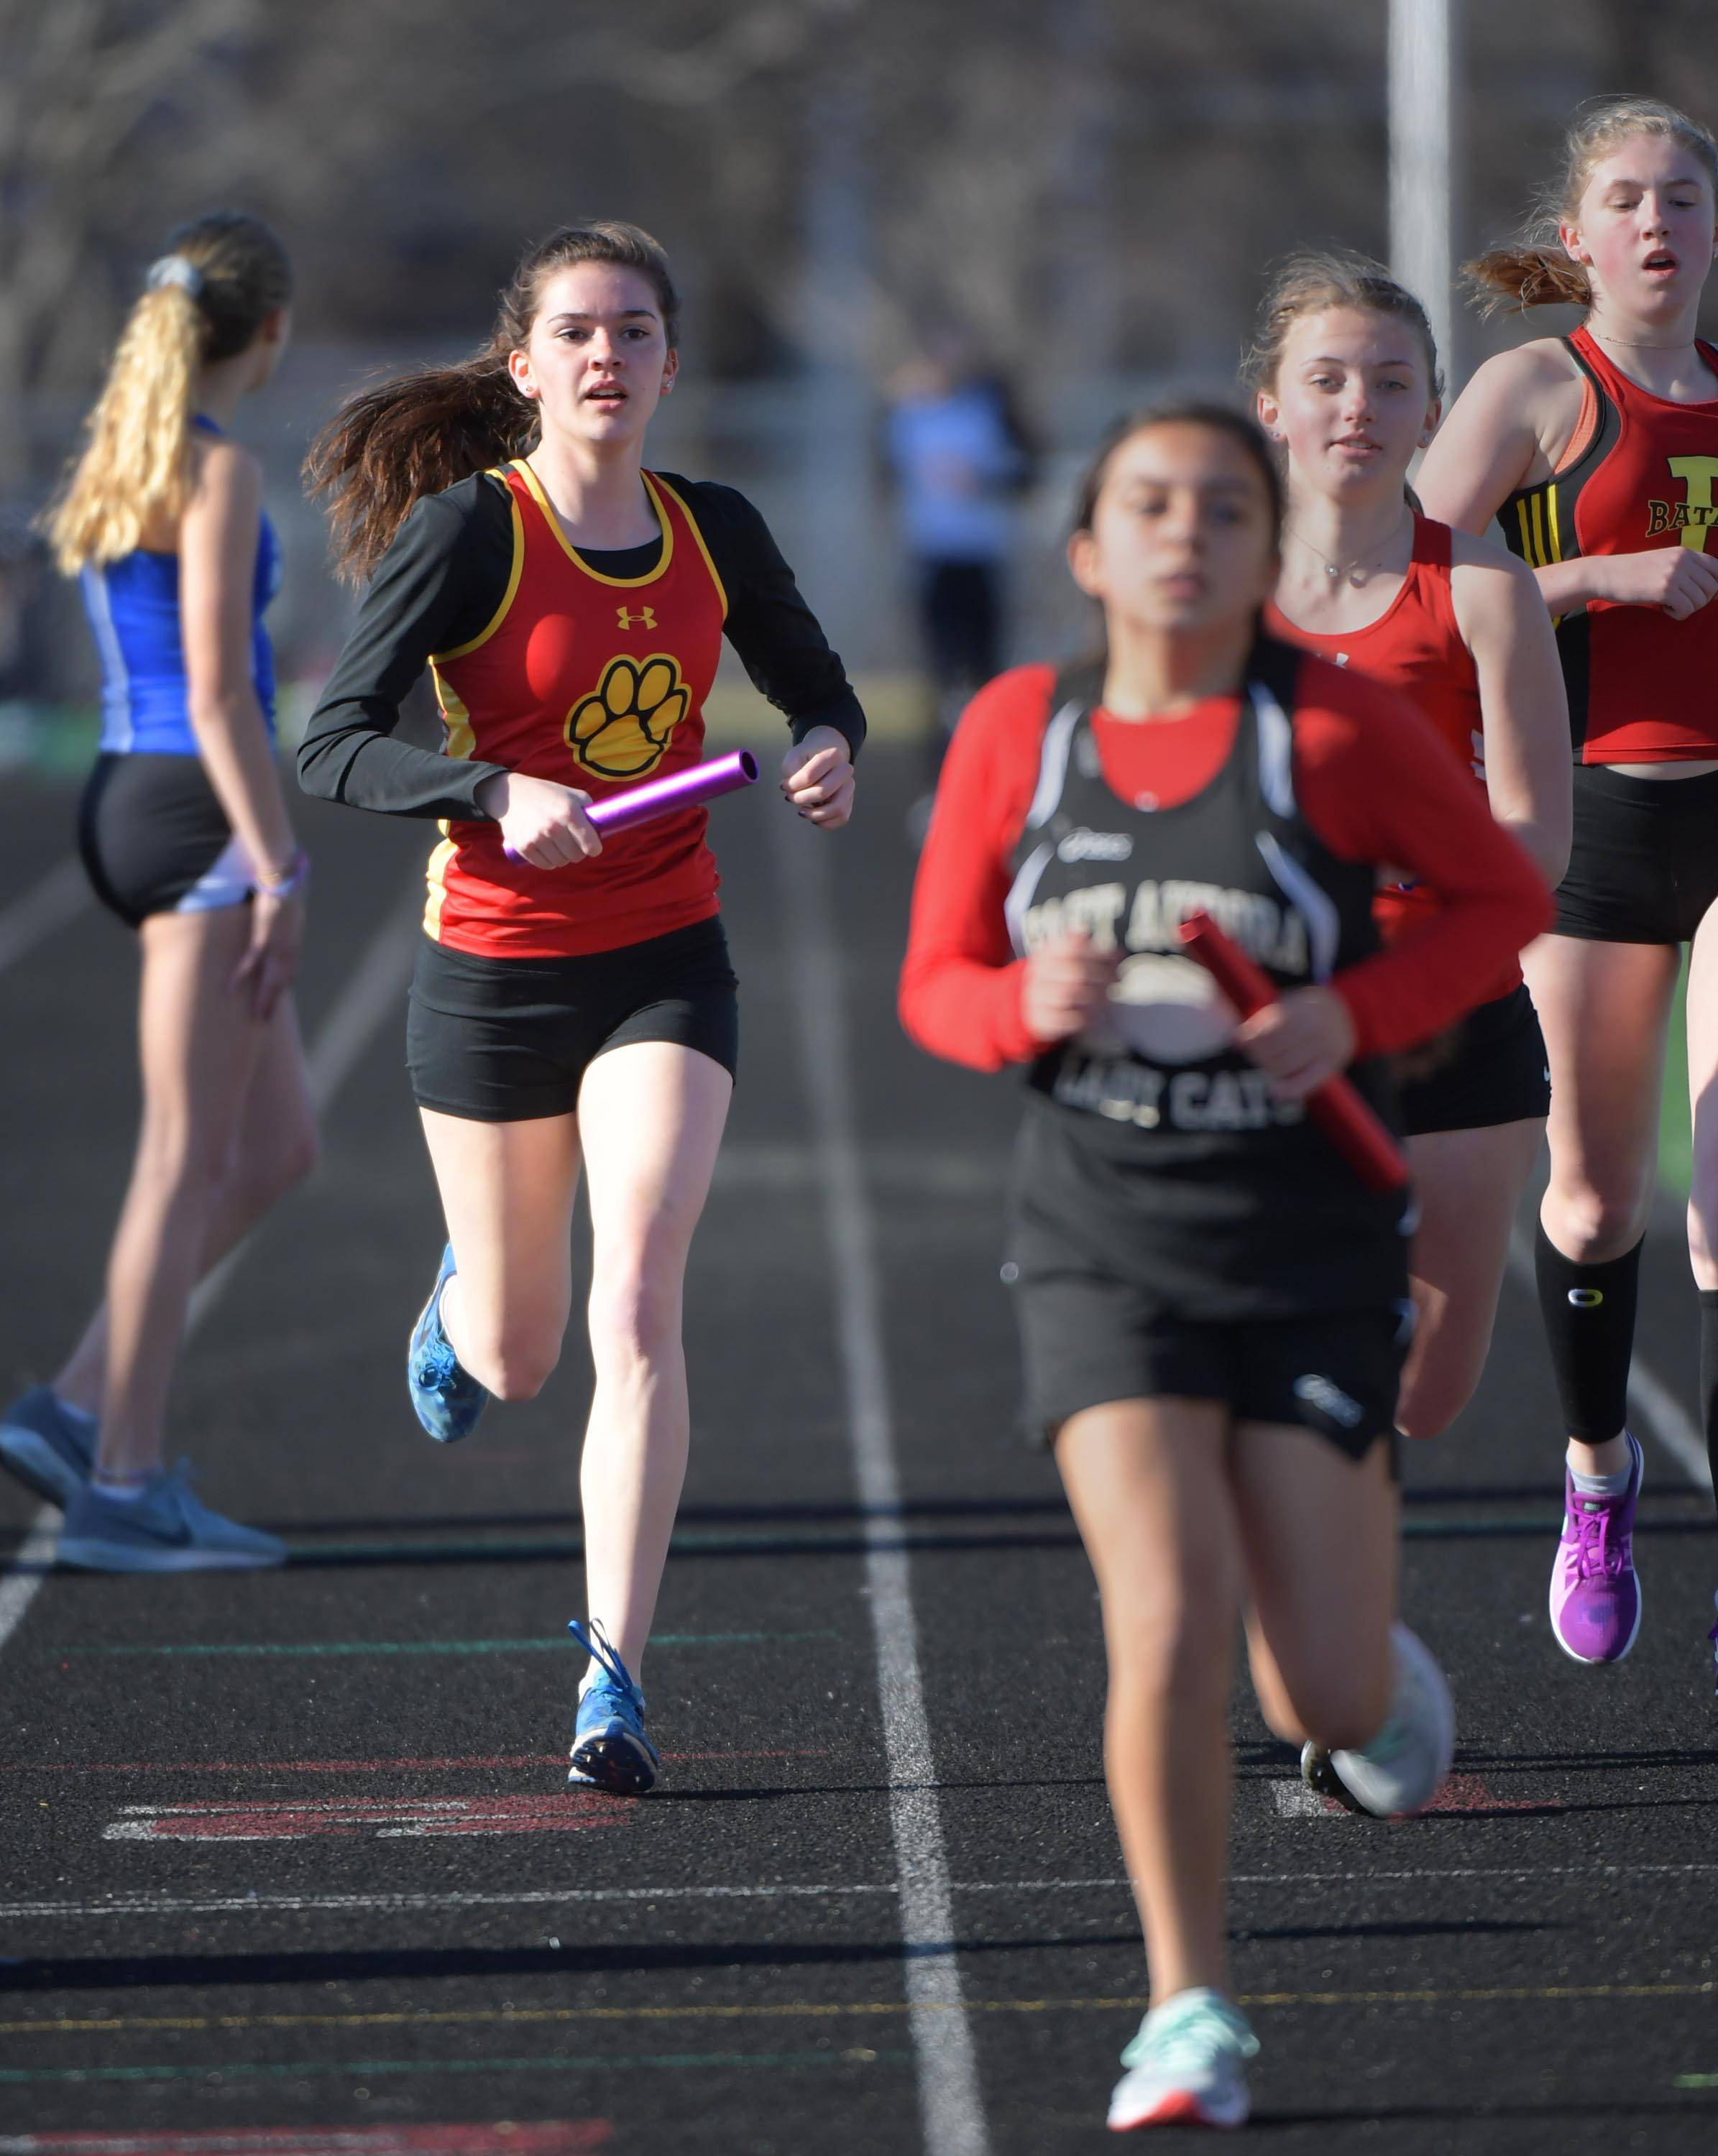 Batavia's Erika Mansfield laps slower teams as she anchors the winning 3,200-meter relay team Thursday at the Batavia girls track invitational.